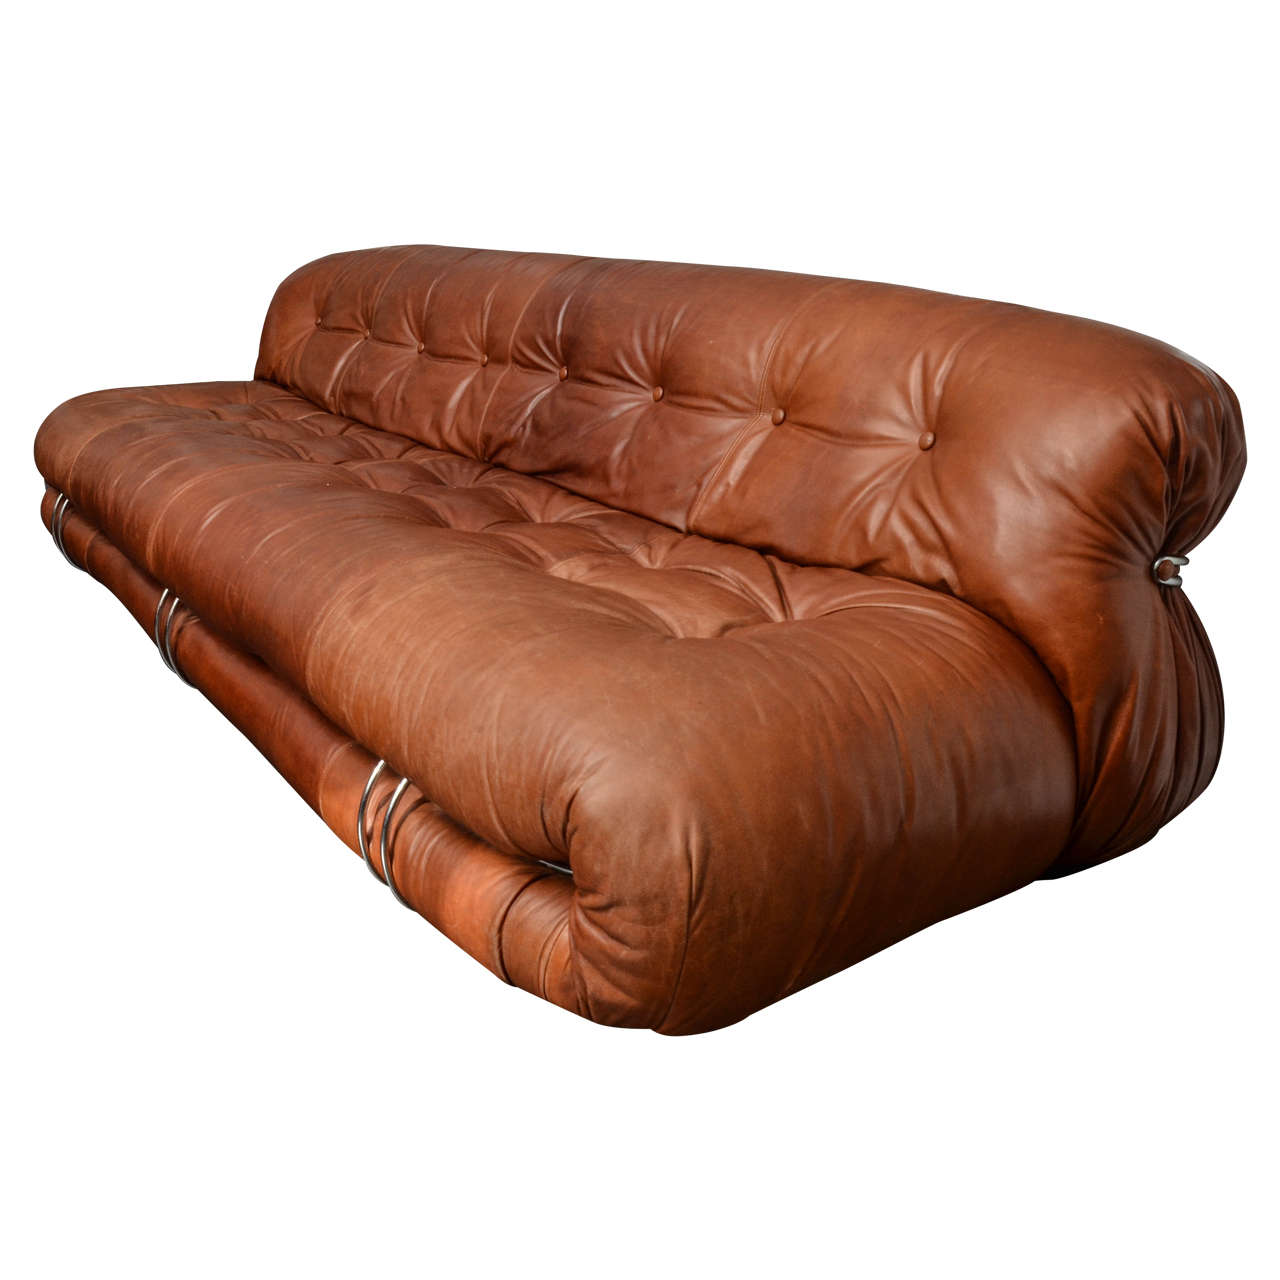 "Soriana"" Tufted Leather Sofa by Tobia Scarpa at 1stdibs"